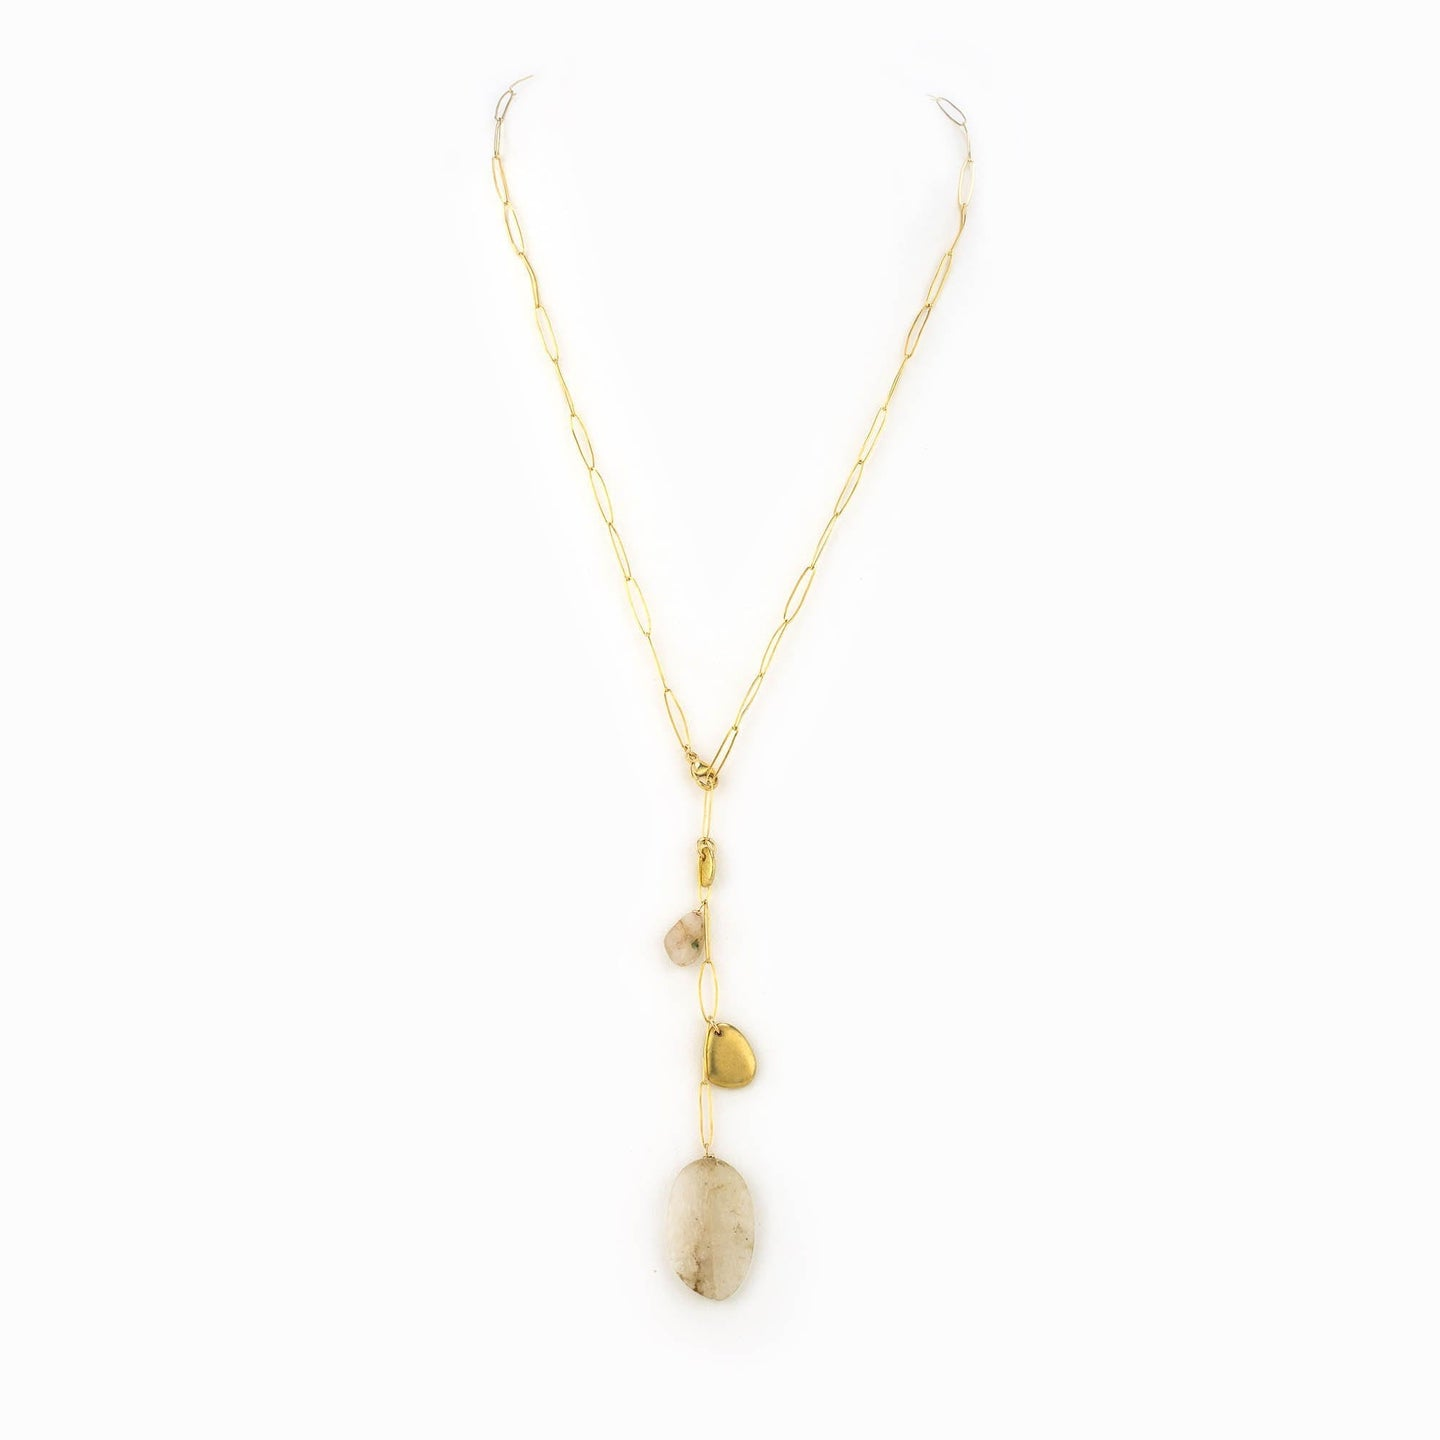 Janus Necklace / Neighborhood Goods